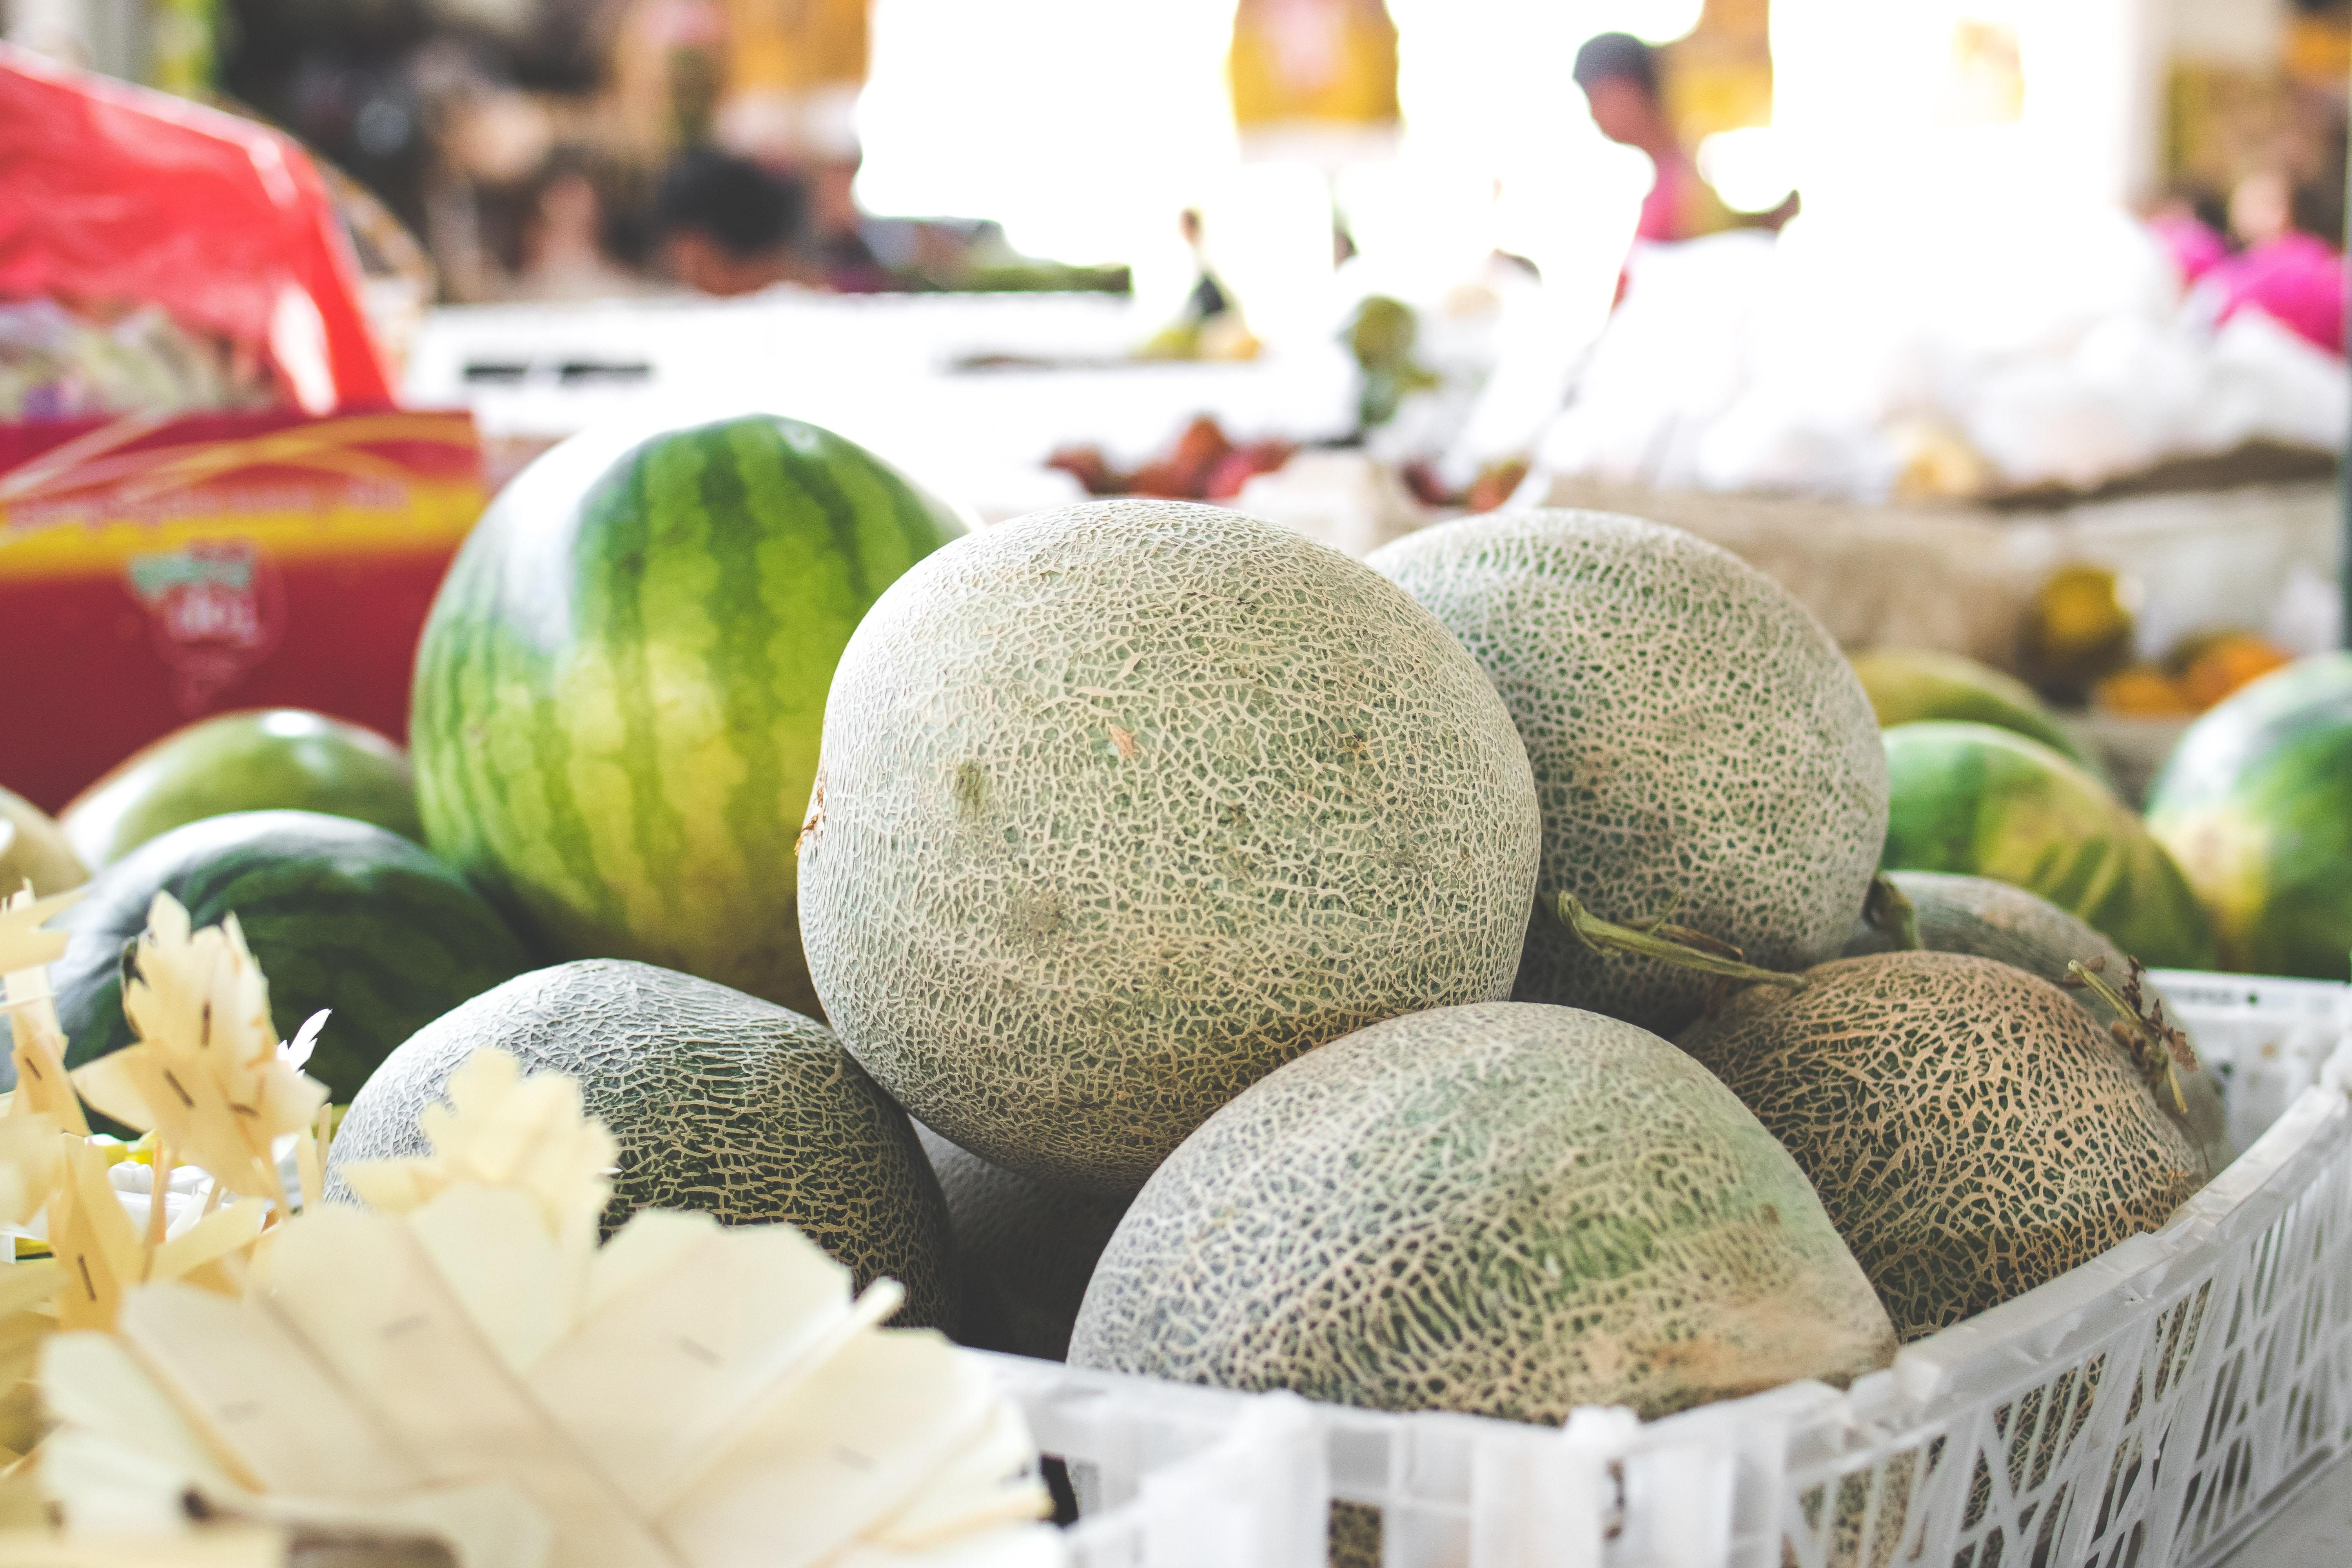 8 Small Melons Packed with Gigantic Flavor Tomato garden